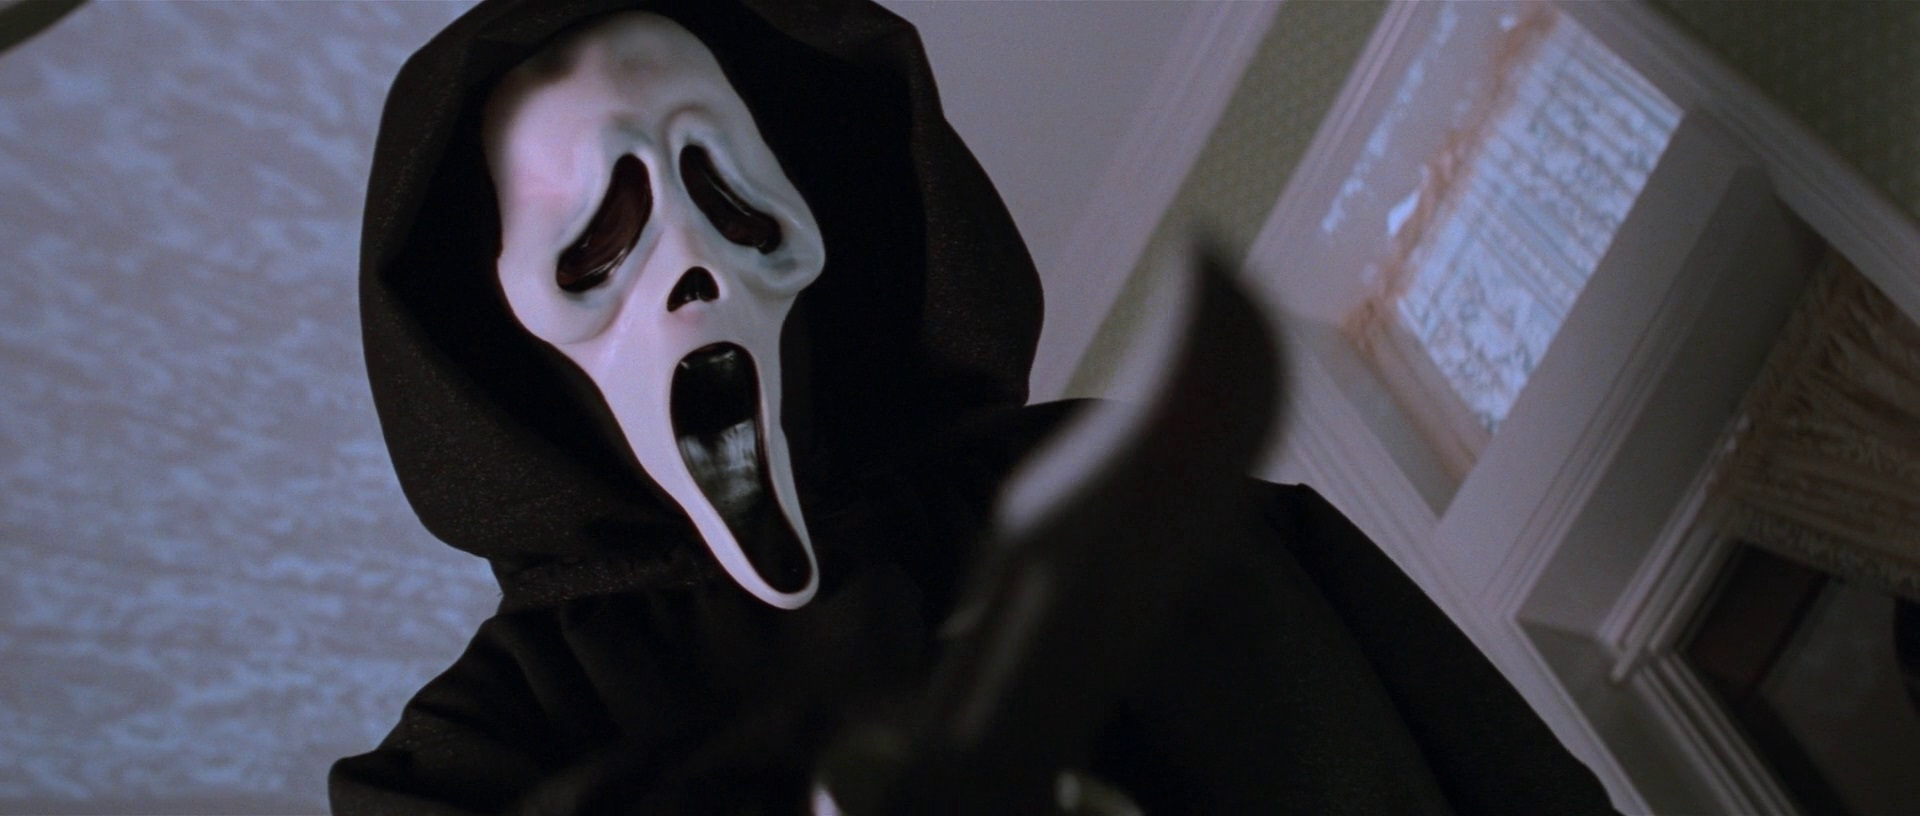 Scream 2 Scream Wiki Fandom Powered By Wikia